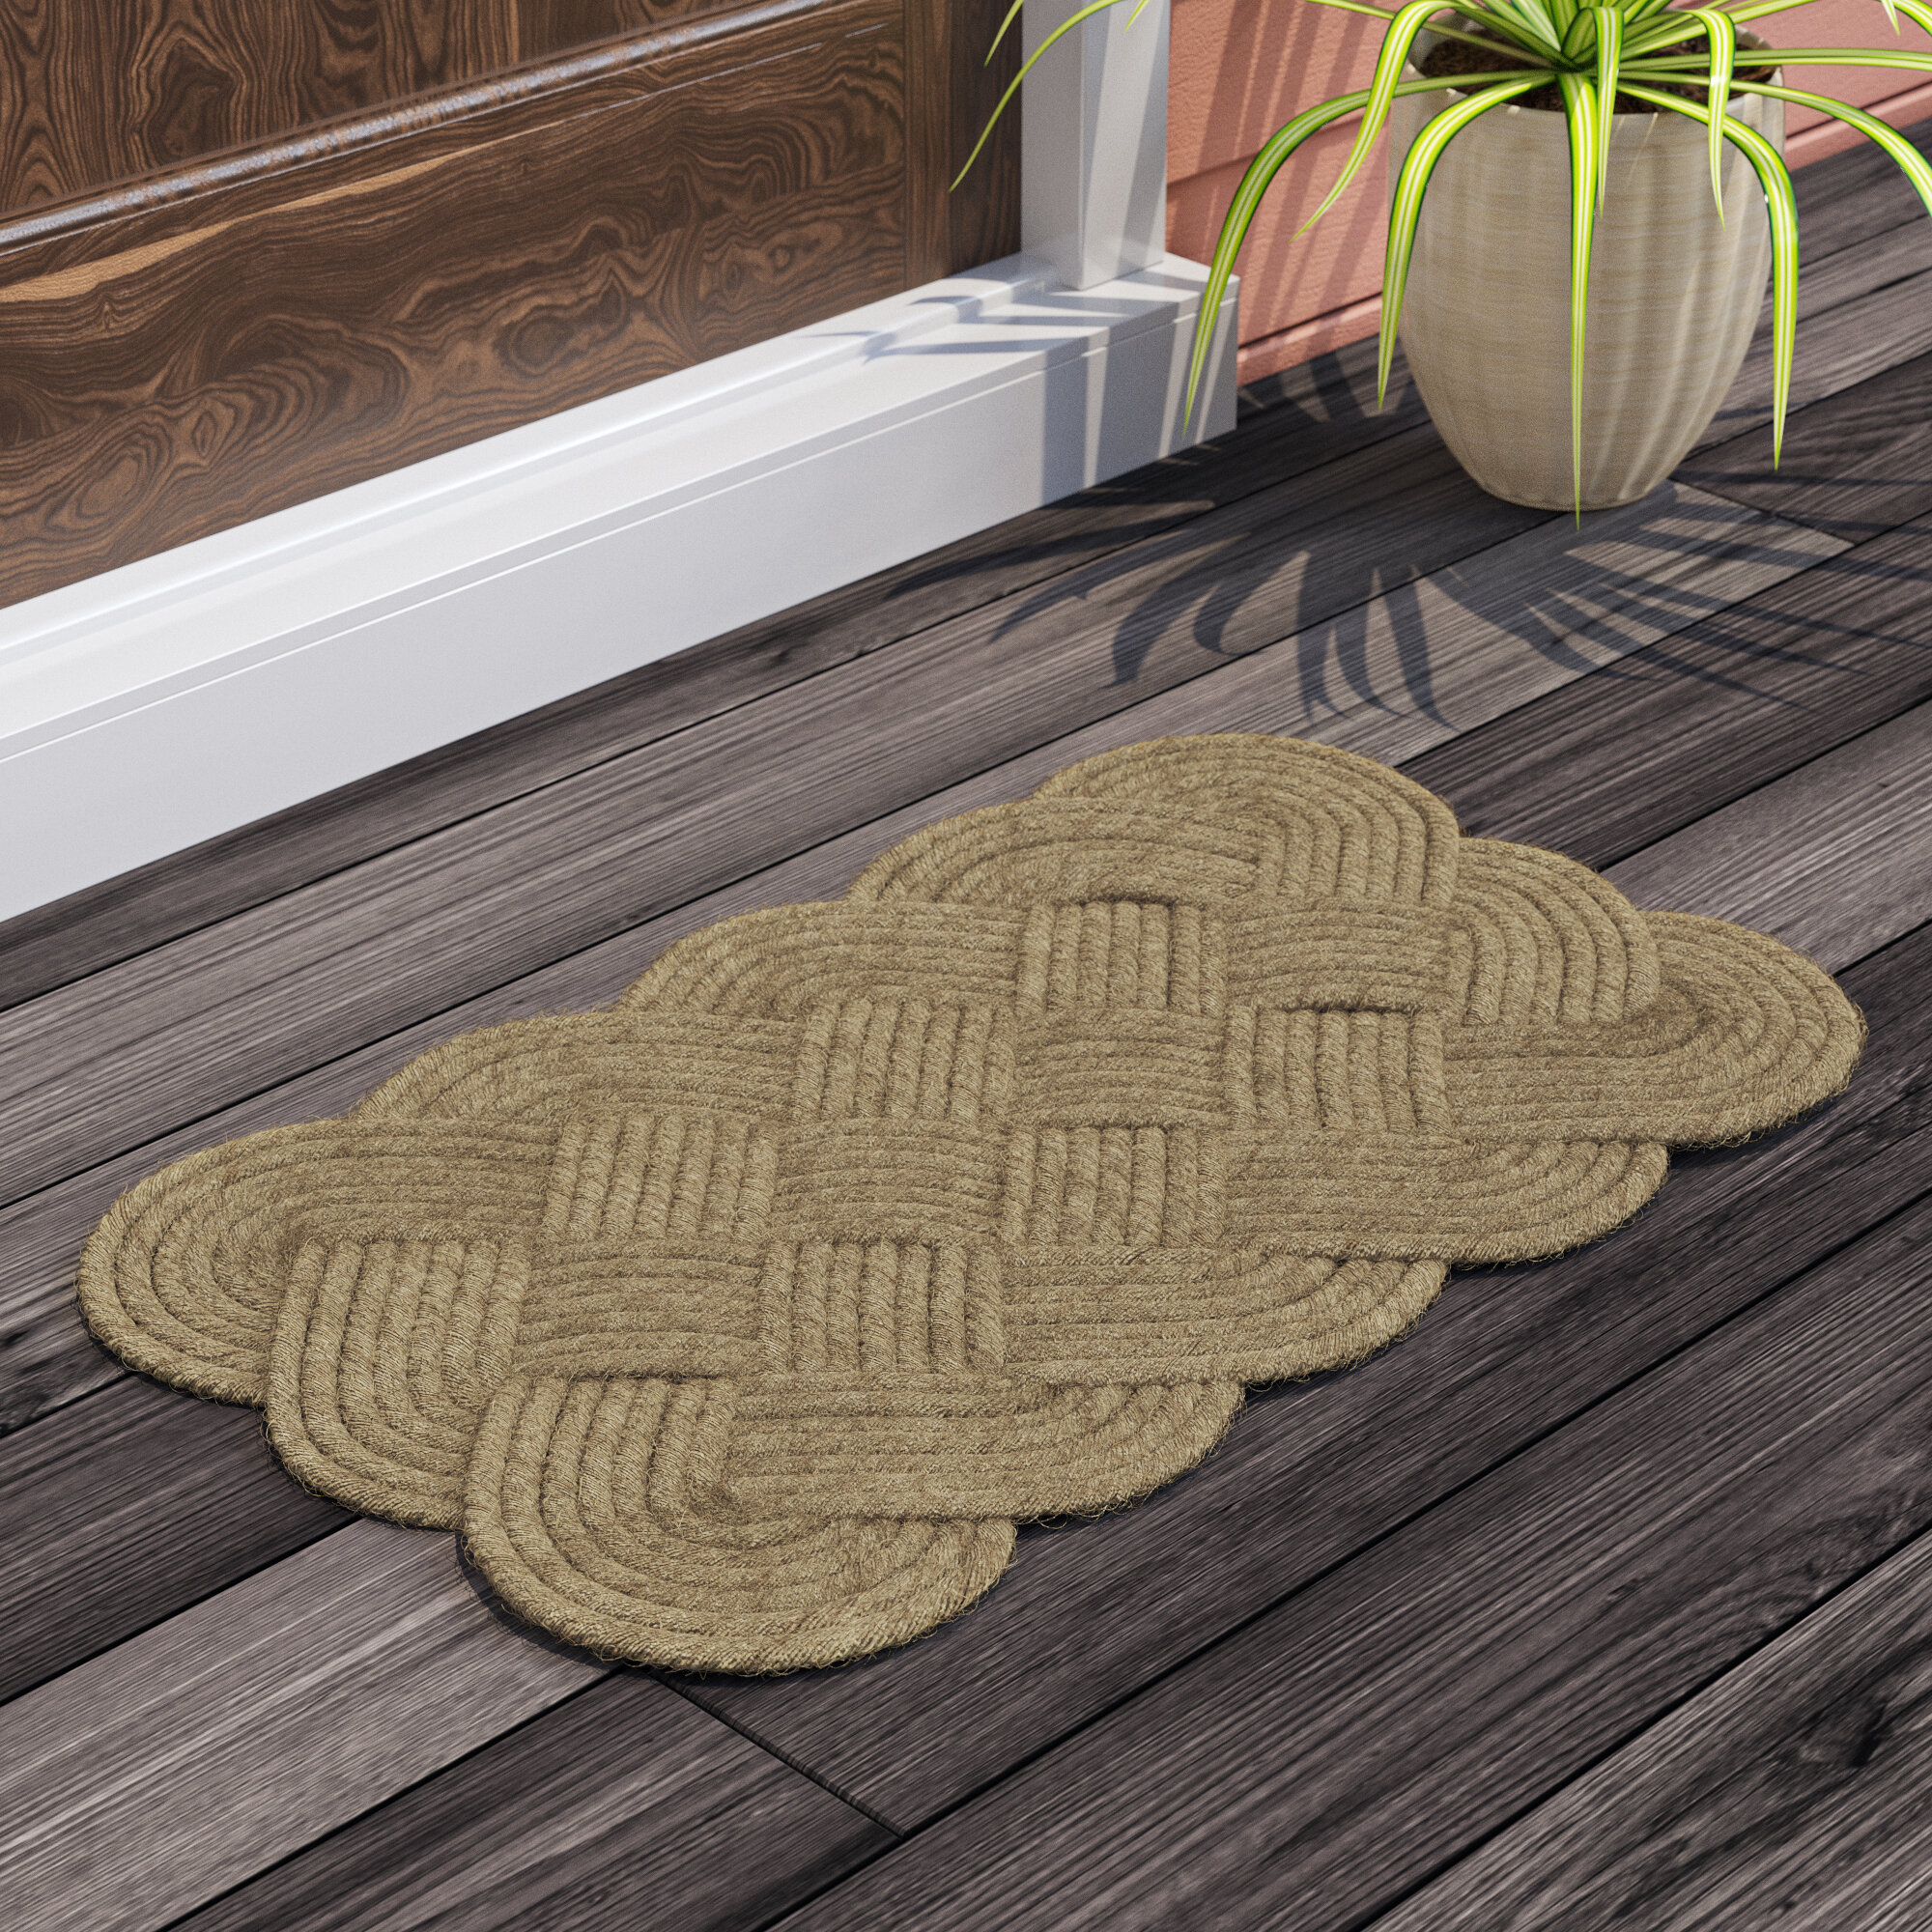 18-Inch by 30-Inch J /& M Home Fashions Oval Knot Woven Coco Doormat